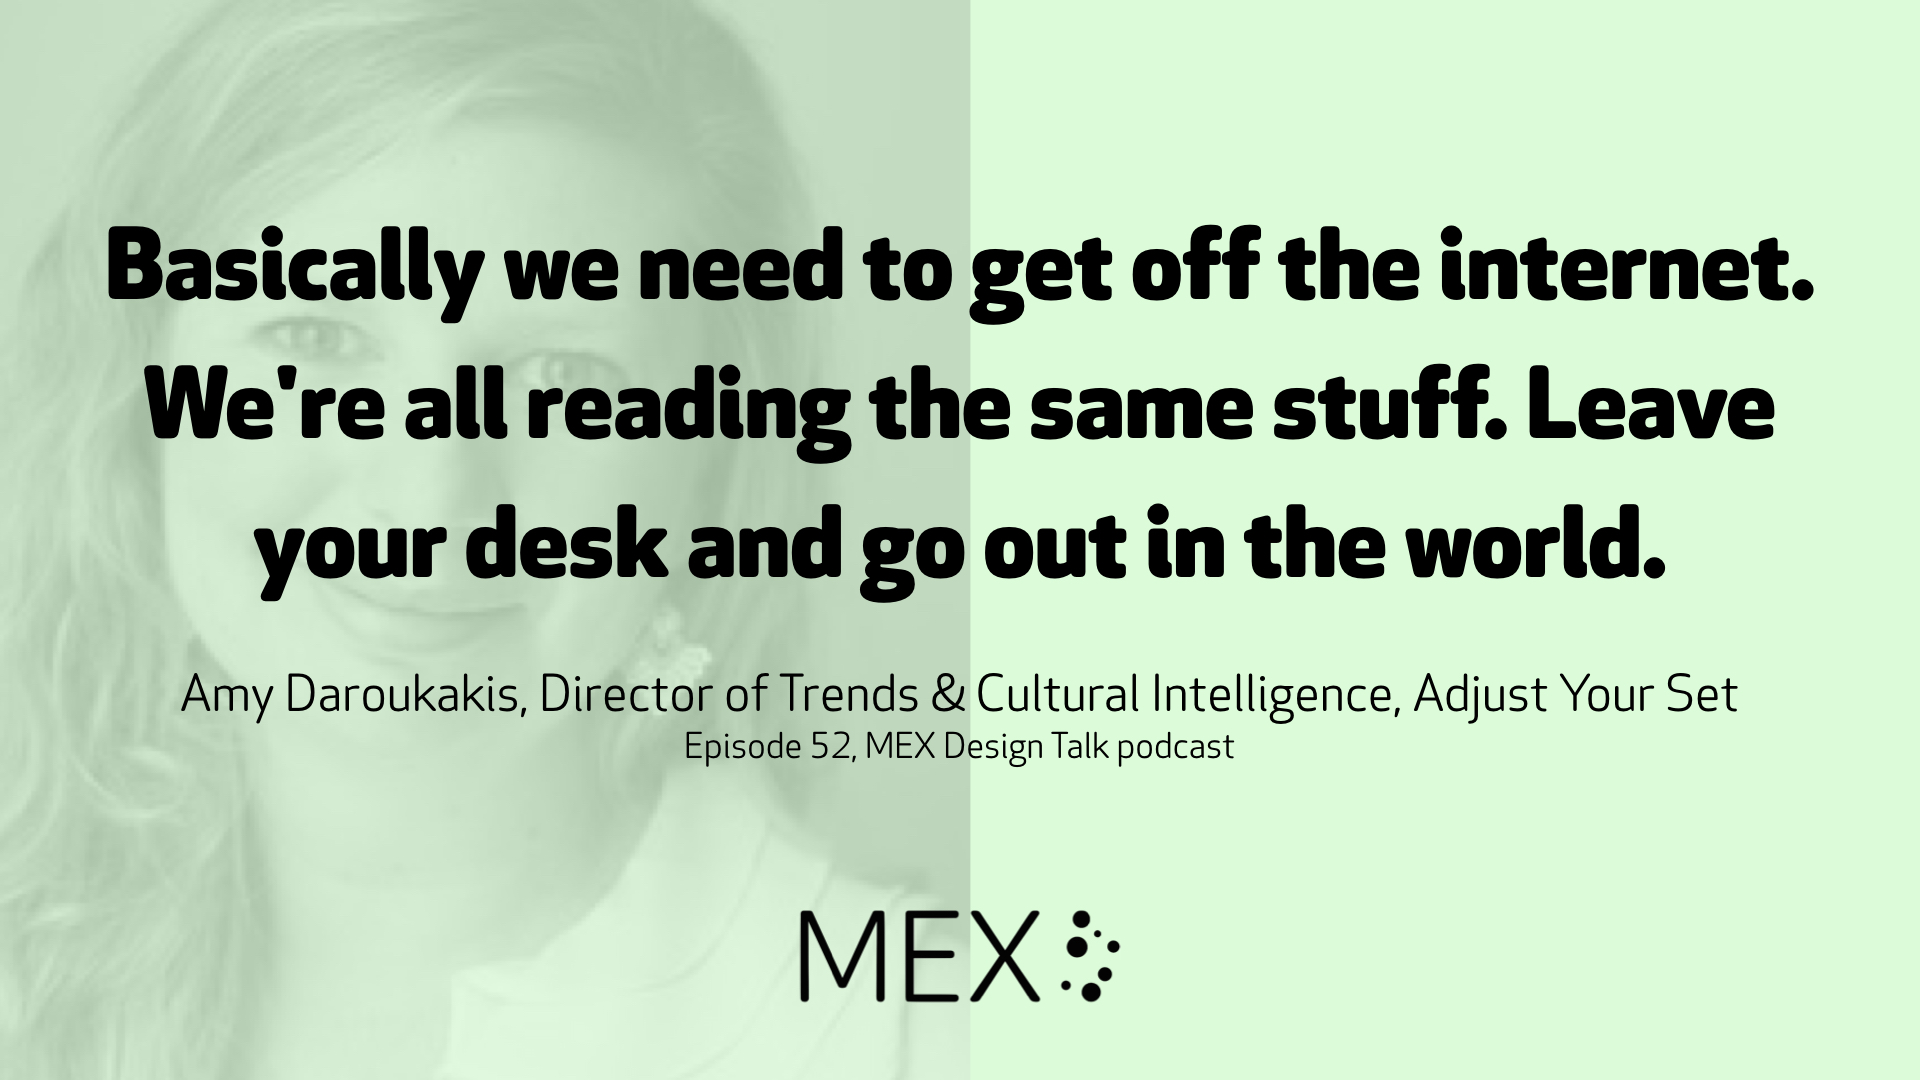 Basically we need to get off the internet. We're all reading the same stuff. Leave your desk and go out in the world. 	 Amy Daroukakis, Director of Trends & Cultural Intelligence, Adjust Your Set Episode 52, MEX Design Talk podcast